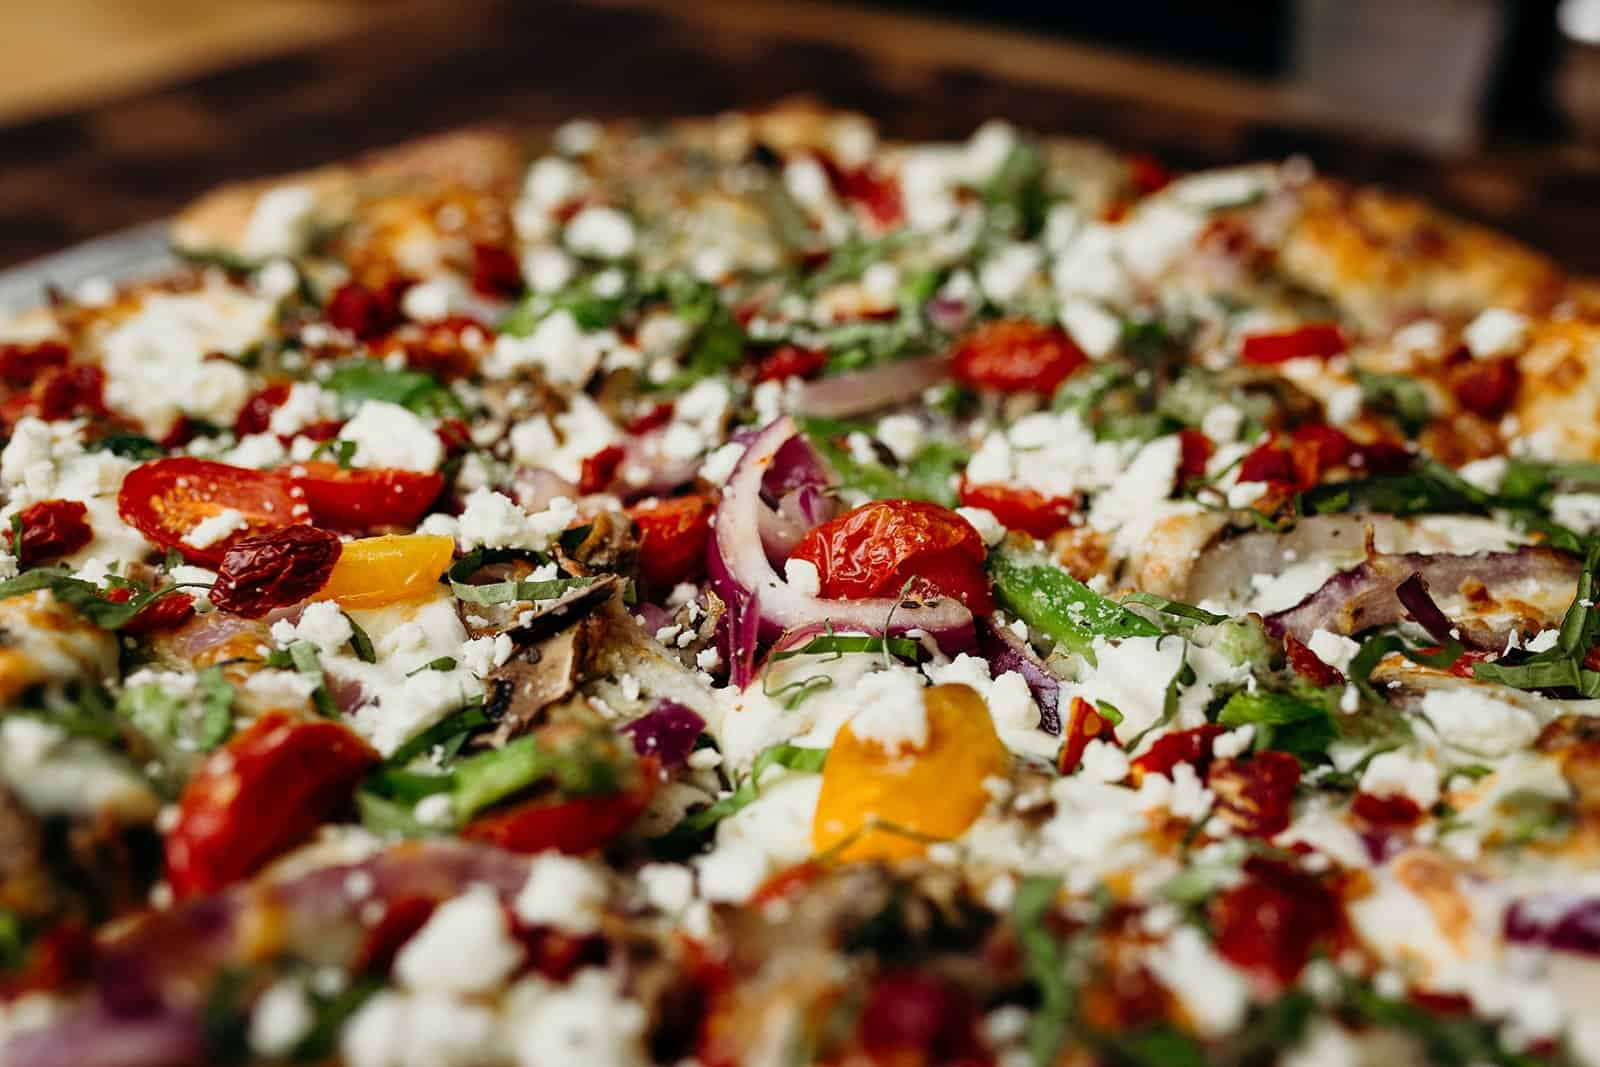 Park Street Pizza / Commercial Shoot 440